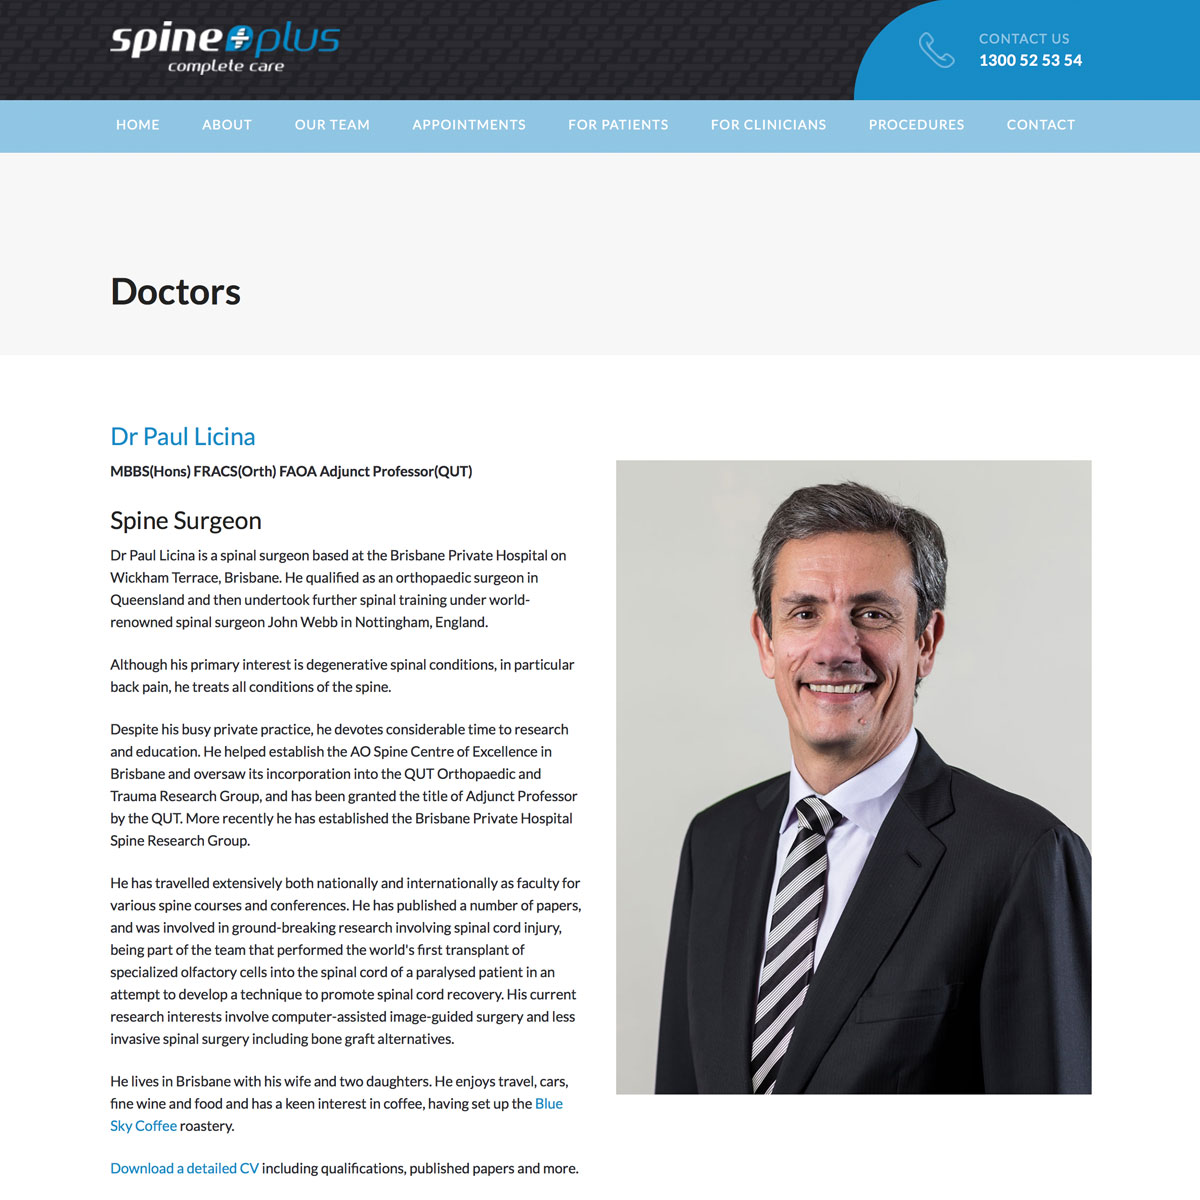 SpinePlus - Dr Paul Licina